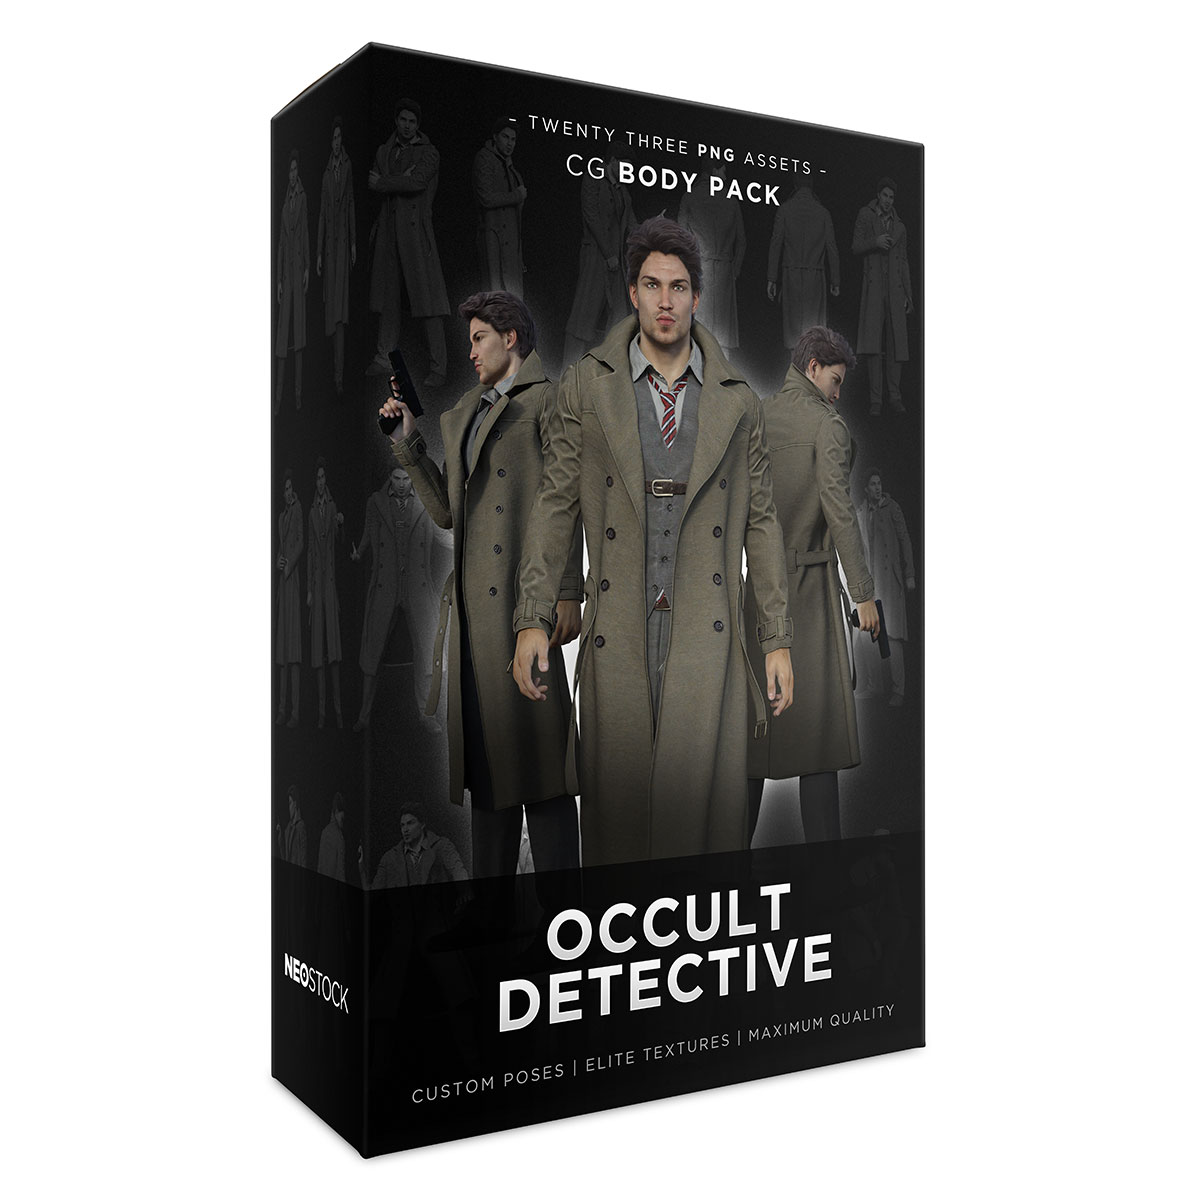 cg occult detective product box sales